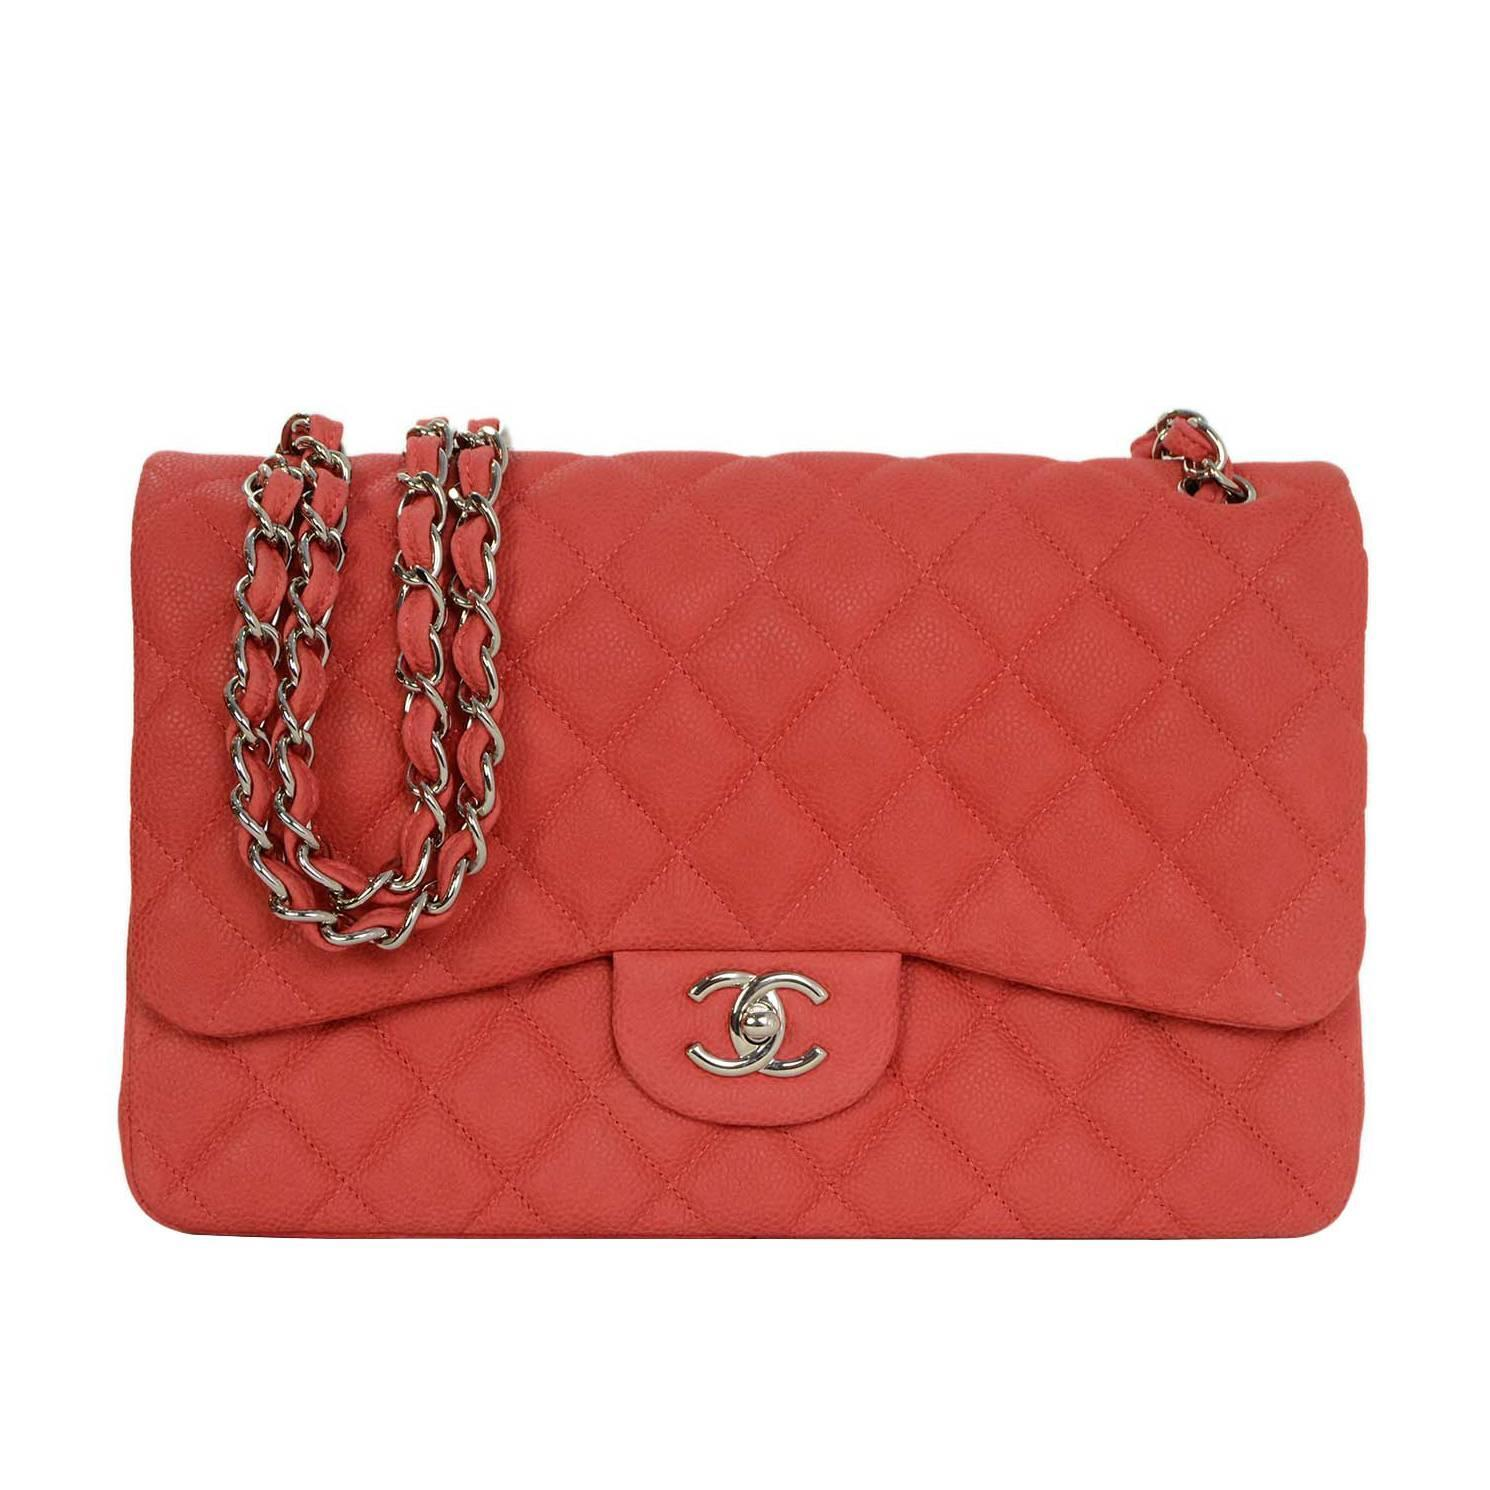 2b4c4bf8199c Chanel Coral Quilted Matte Caviar Jumbo Classic Double Flap Bag SHW For  Sale at 1stdibs